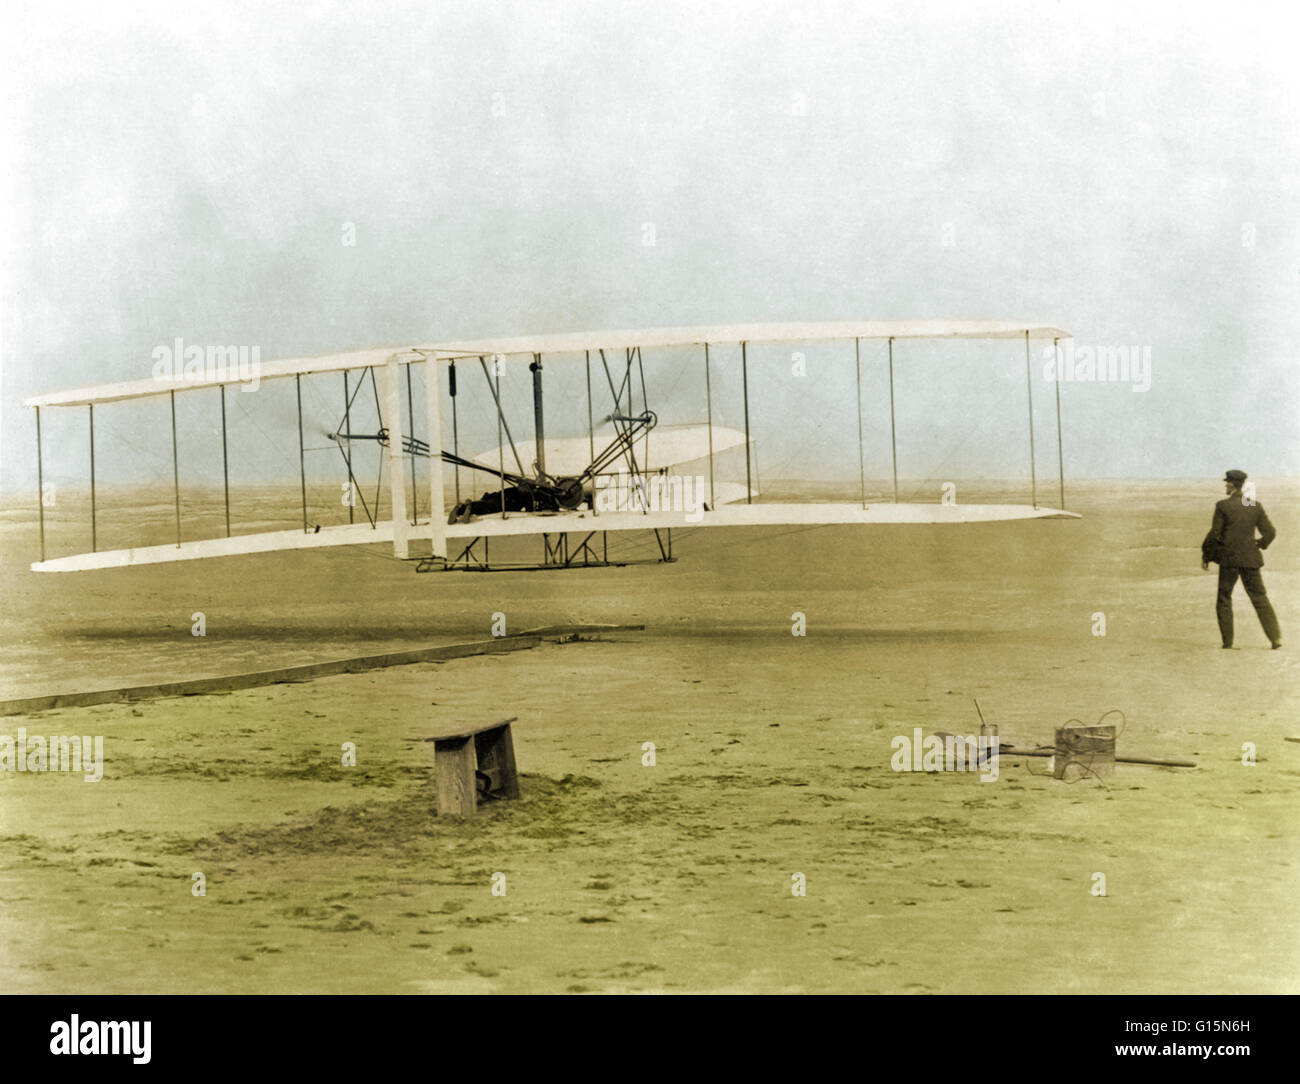 Wright Brothers Flight regarding the wright brothers' first heavier-than-air flight. on december 17